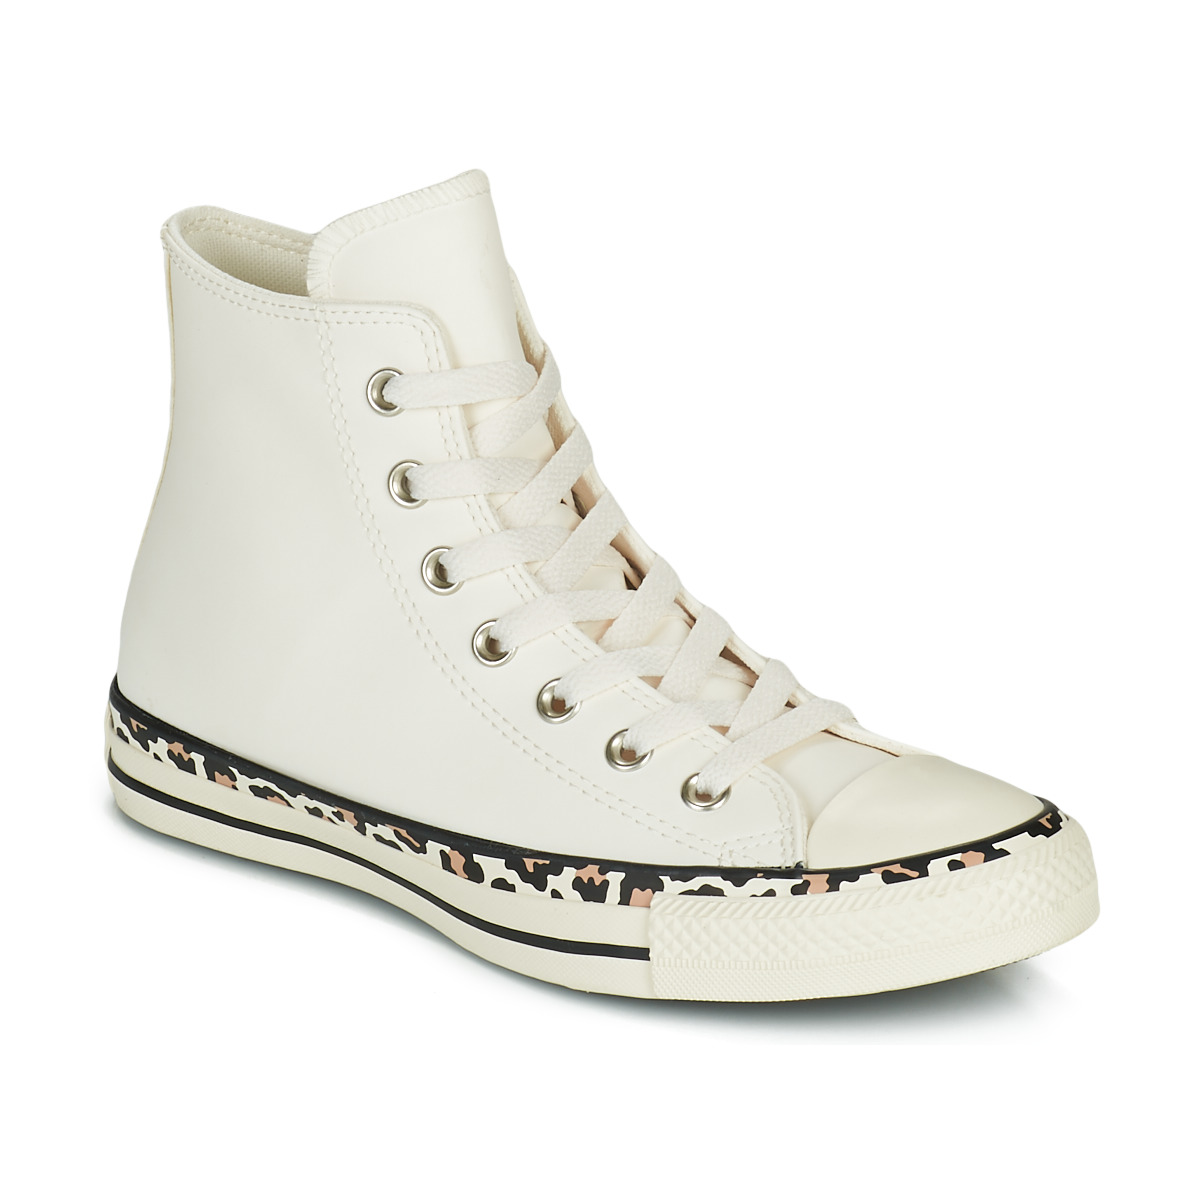 Sneakers alte donna Converse CHUCK TAYLOR ALL STAR ARCHIVE DETAILS HI Bianco